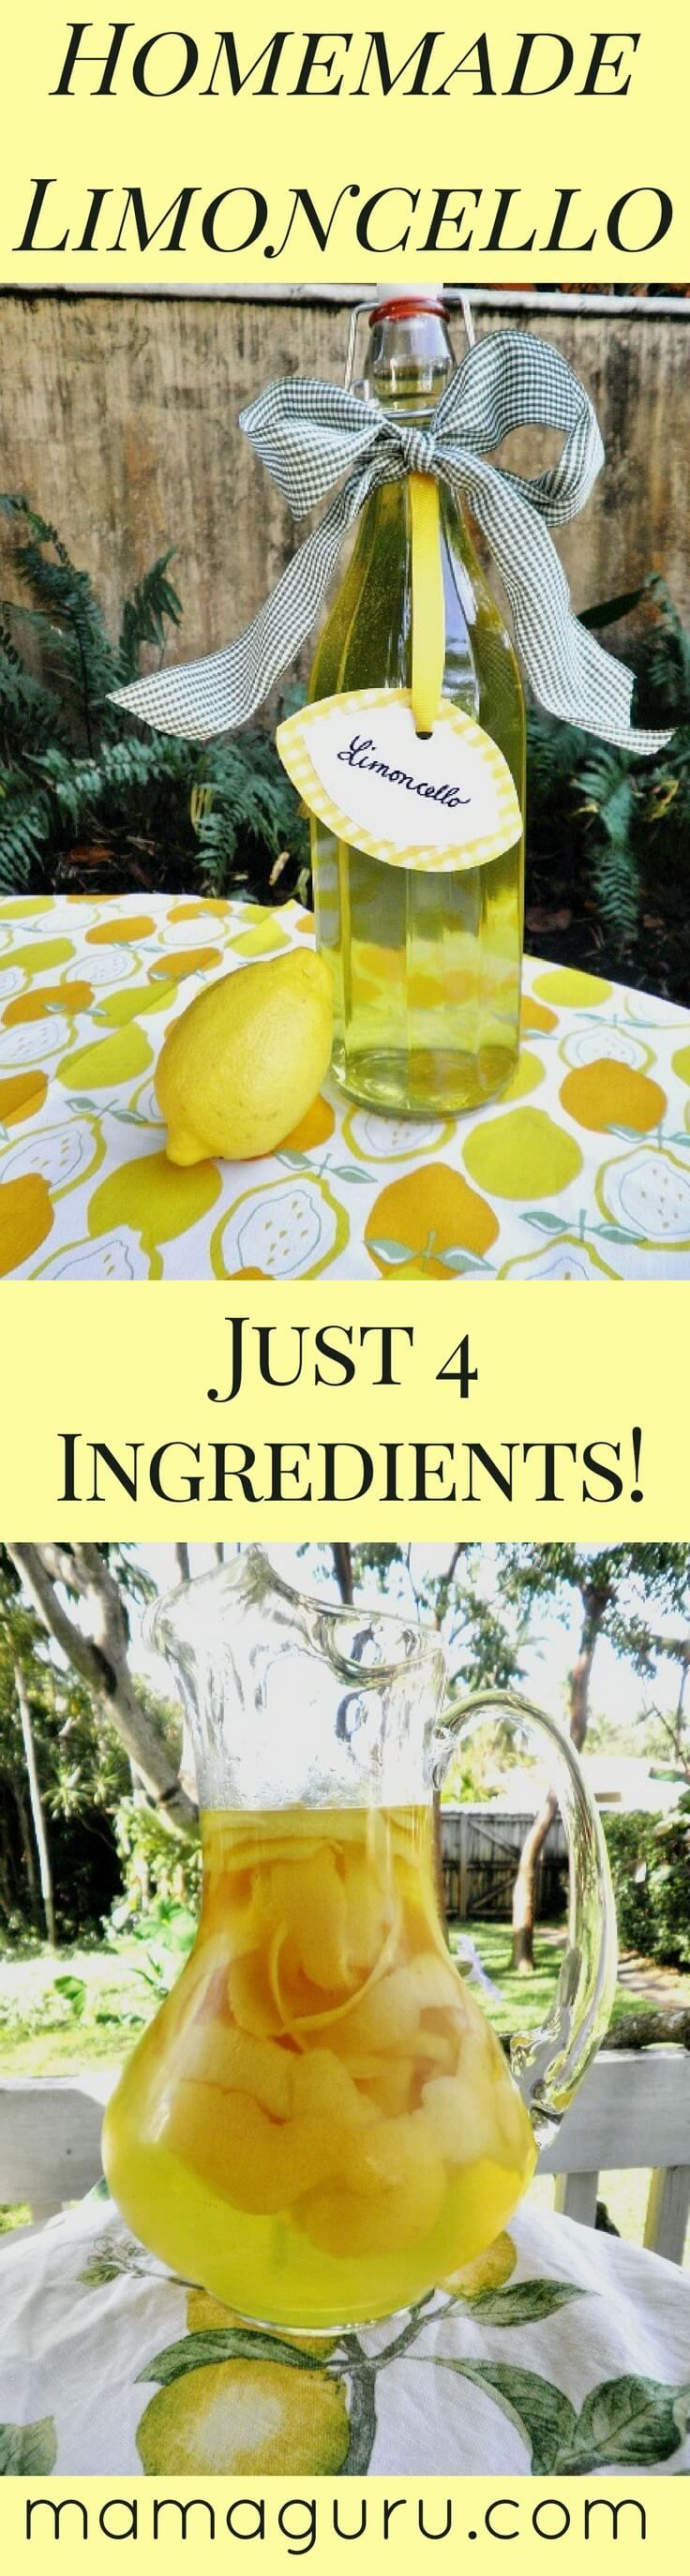 Homemade Limoncello ♥ Authentic Italian Recipe ♥ Homemade Christmas Gift                                                                                                                                                                                 More